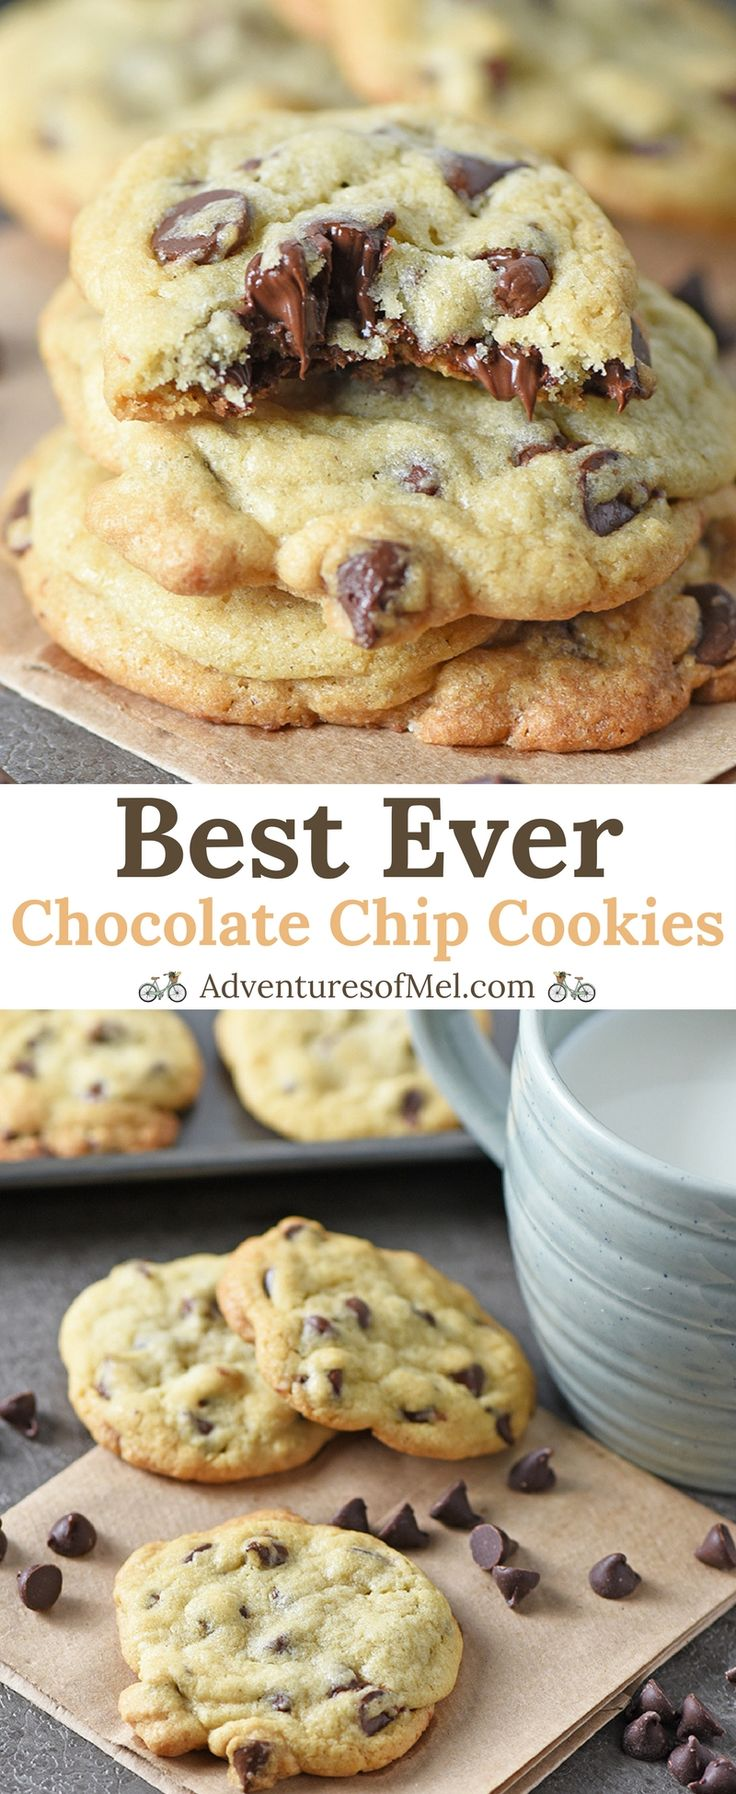 Chocolate Chip Cookies are my favorite dessert, and this easy recipe is the best chocolate chip cookie recipe ever! Make homemade chewy cookies from scratch that are slightly crispy on the edge, soft and chewy in the middle. Plus I share an easy tip for keeping them soft and chewy in the cookie jar.